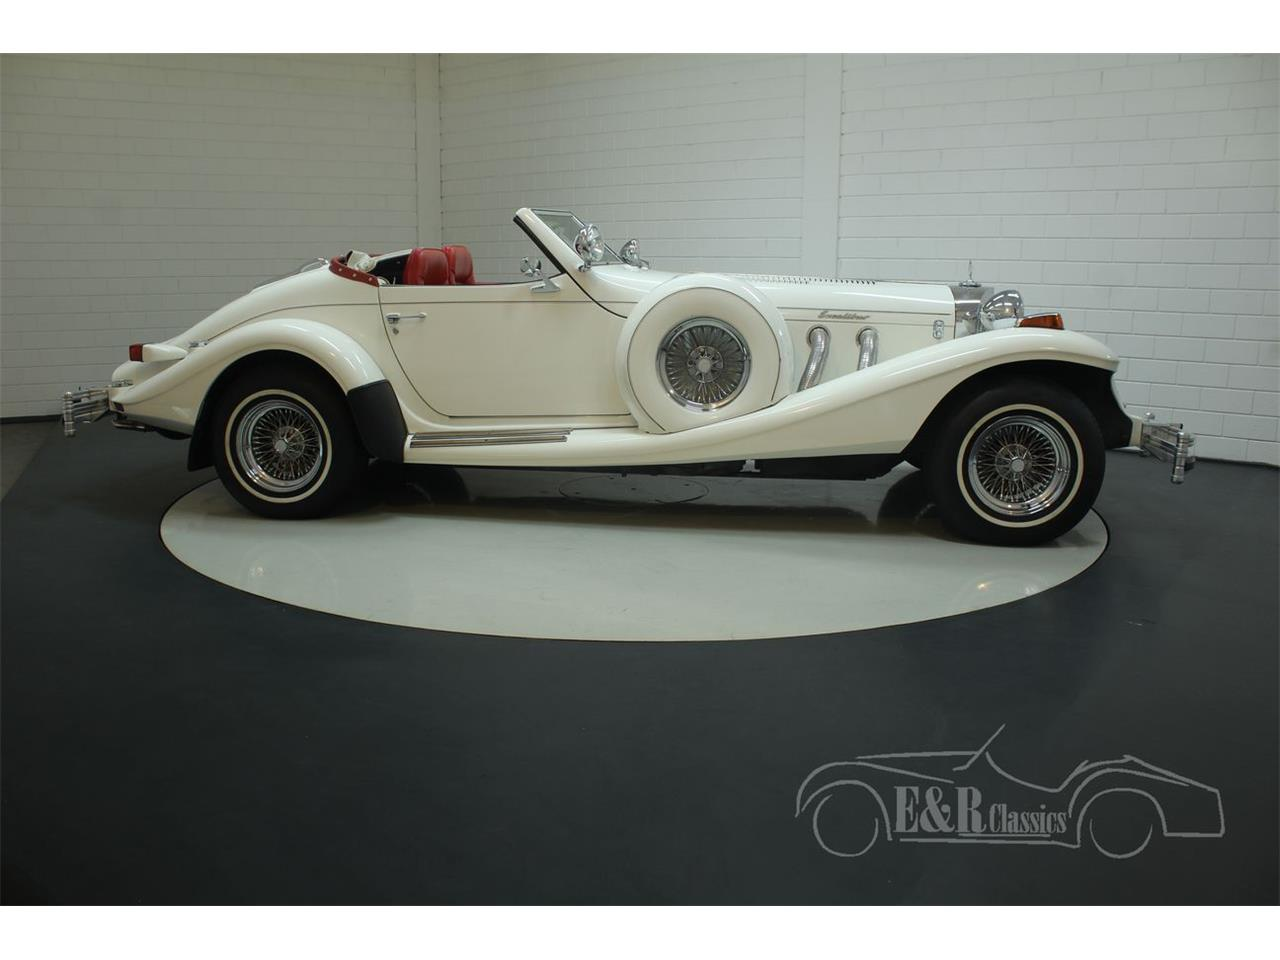 Large Picture of '82 Excalibur Series IV Phaeton located in noord brabant - $78,450.00 Offered by E & R Classics - Q3GF